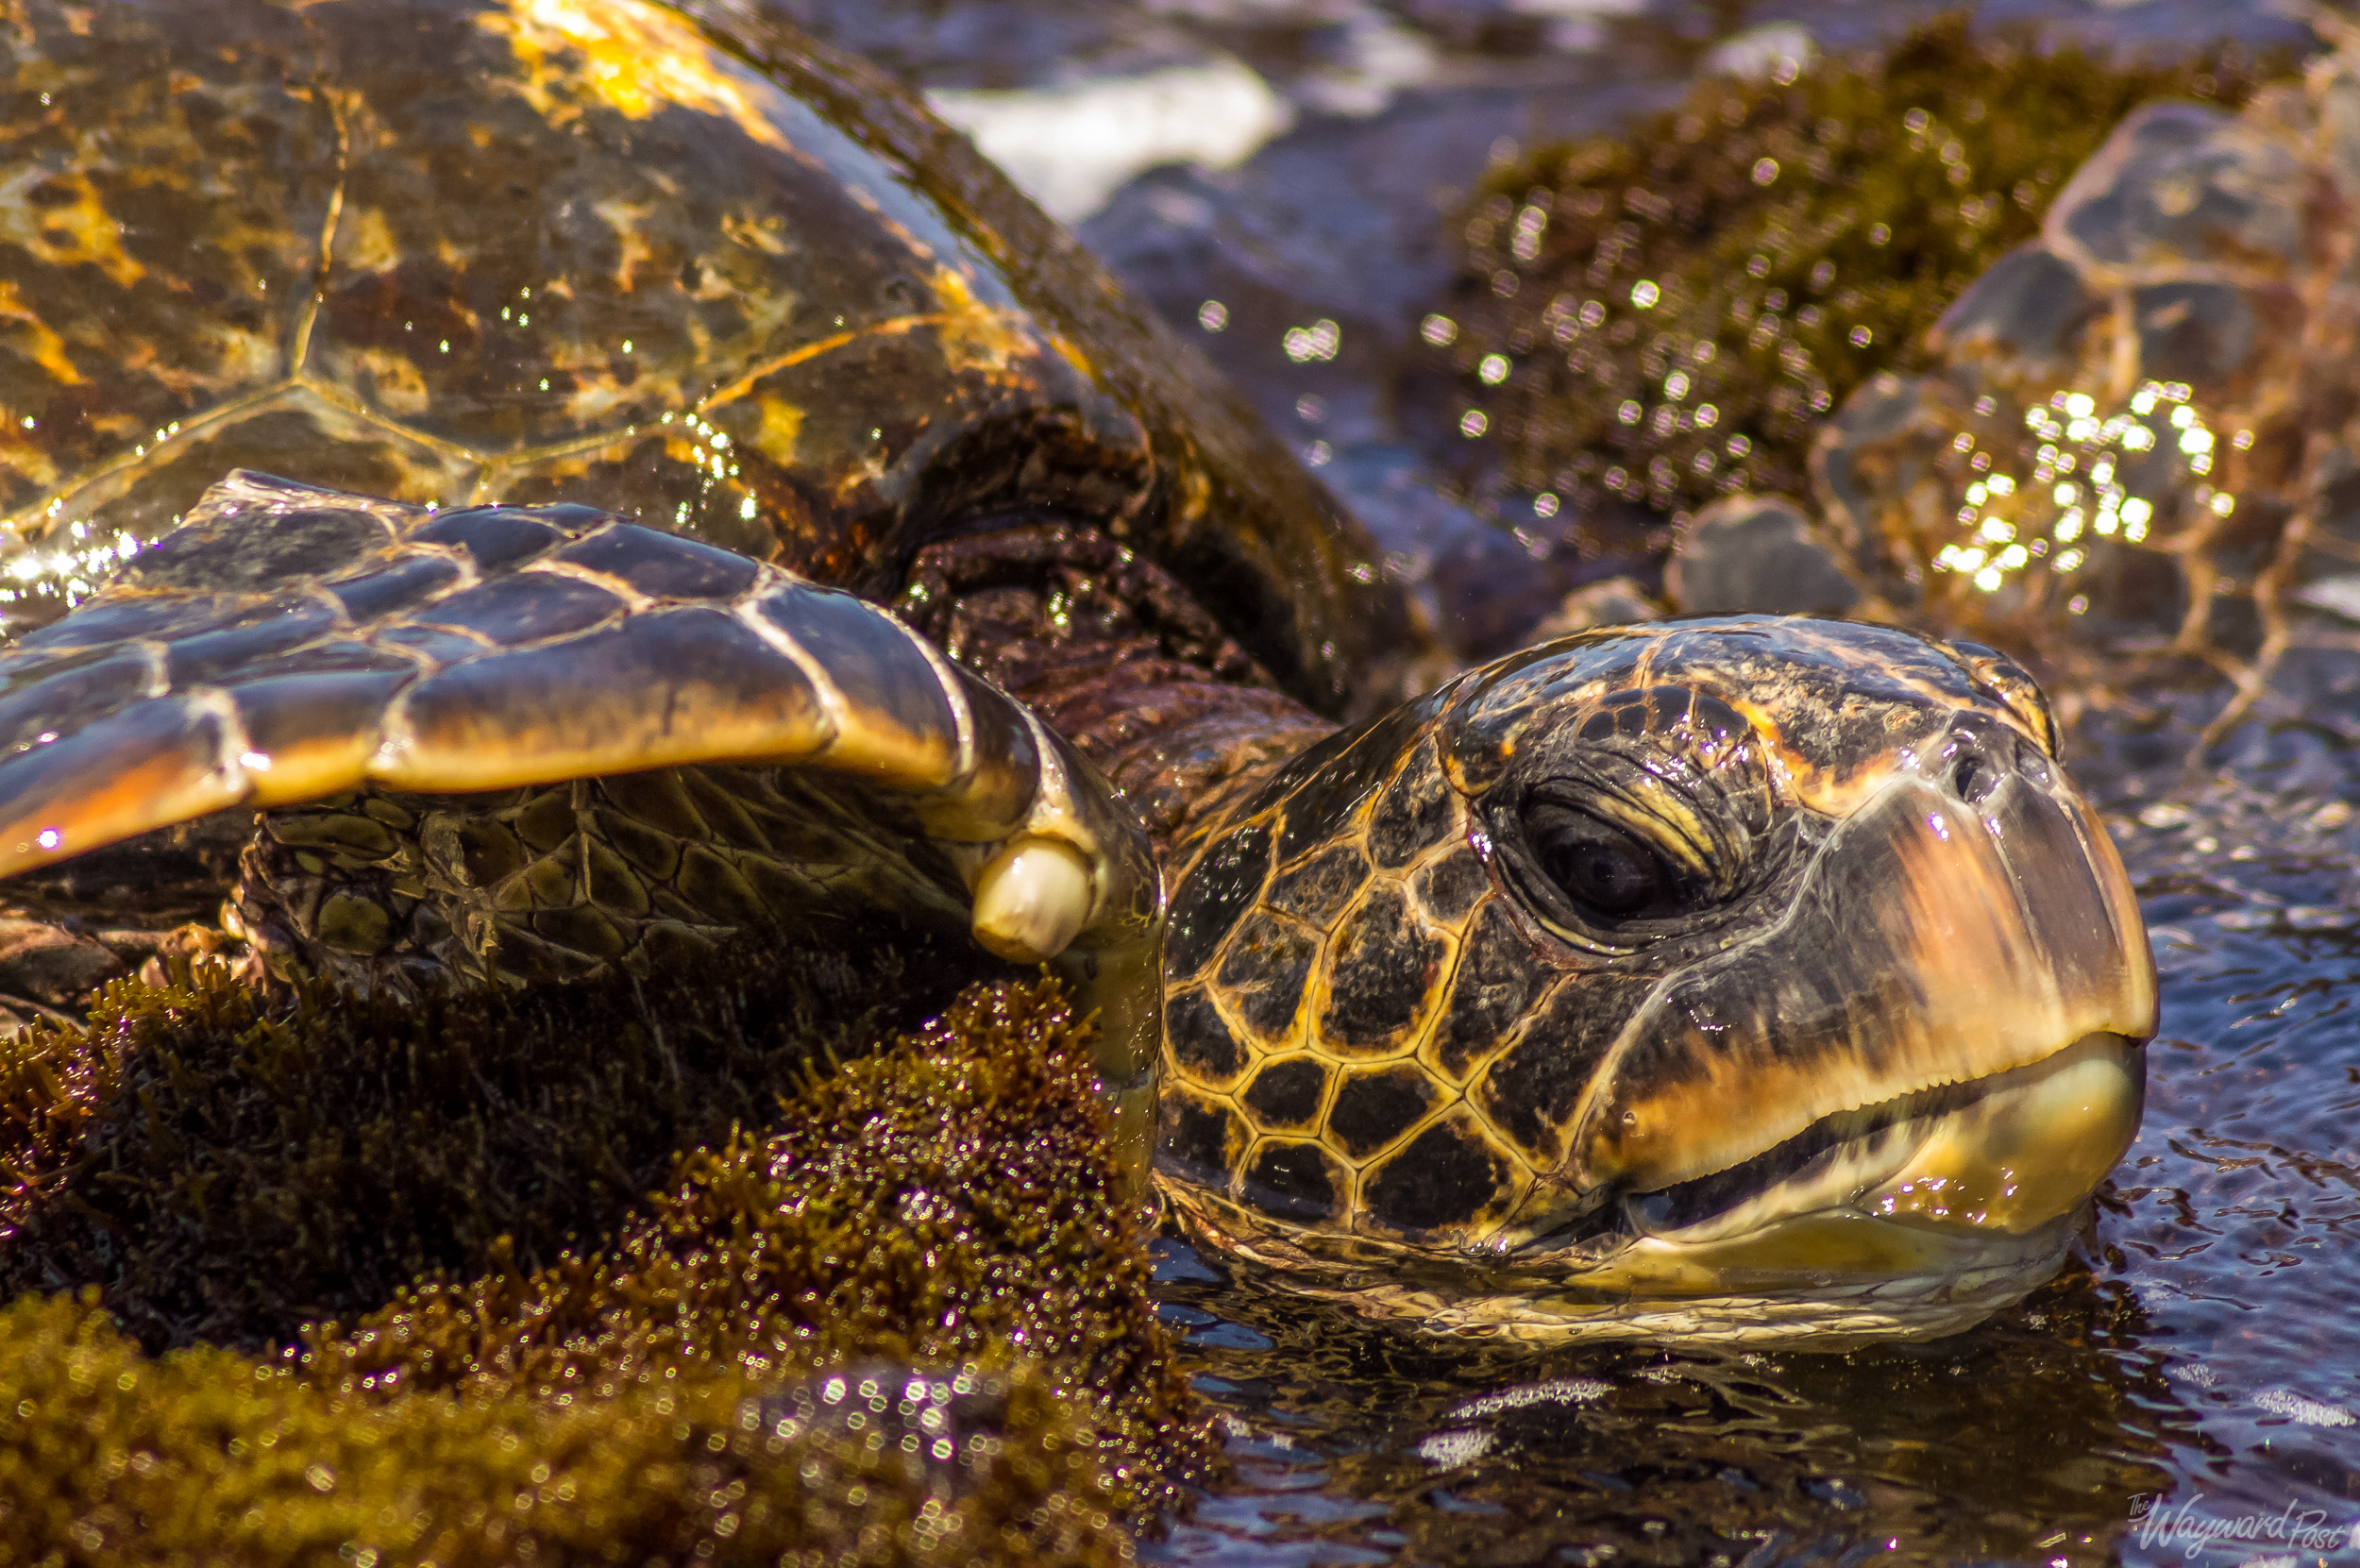 """A Green Sea Turtle seen on Laniakea Beach, sometimes referred to as """"Turtle Beach."""" This beach can be found on the north shore of Oahu."""